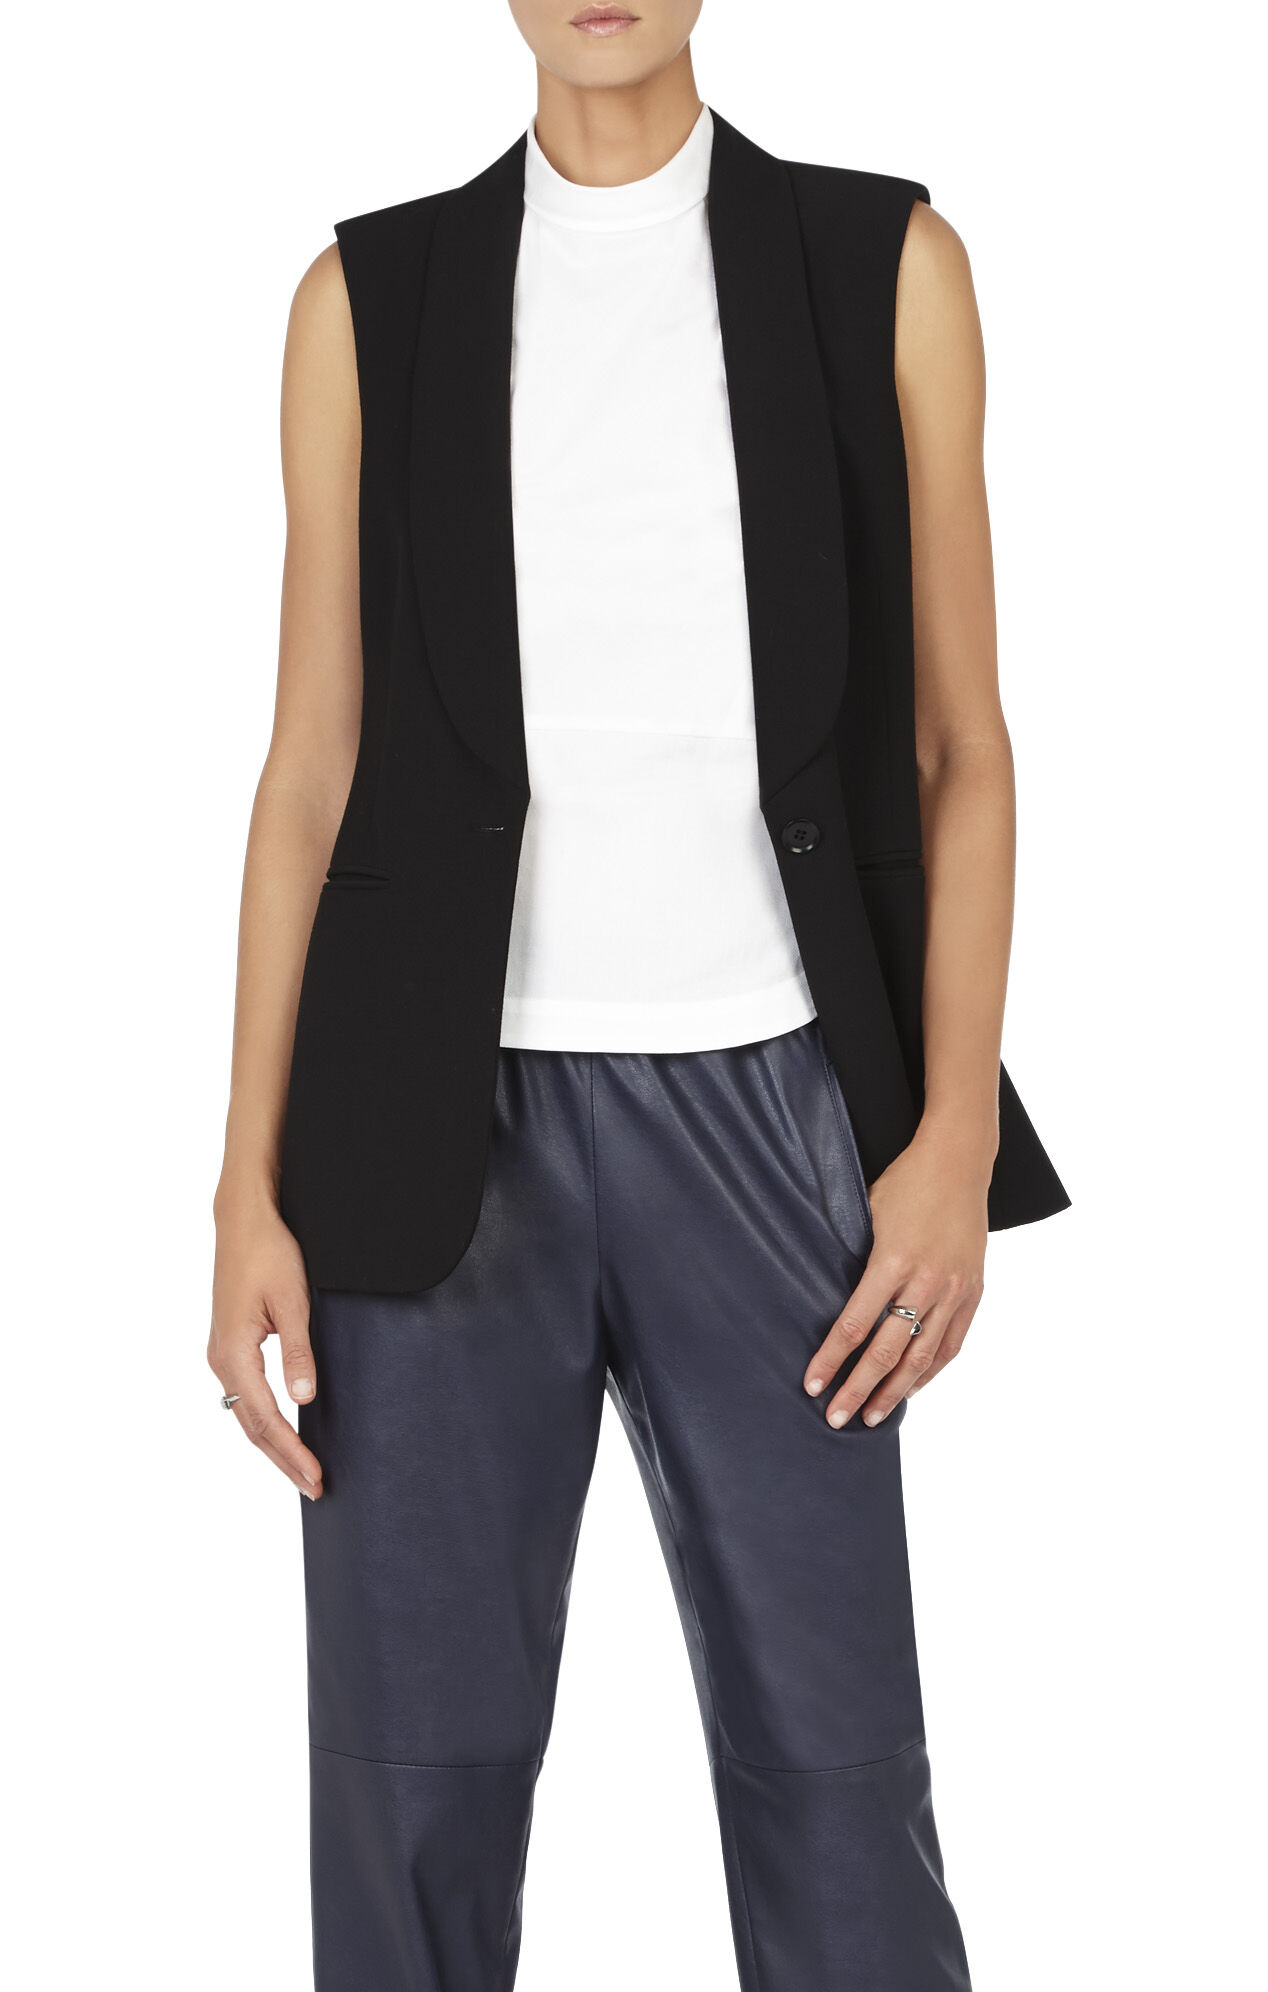 Cole Zipper-Back Vest